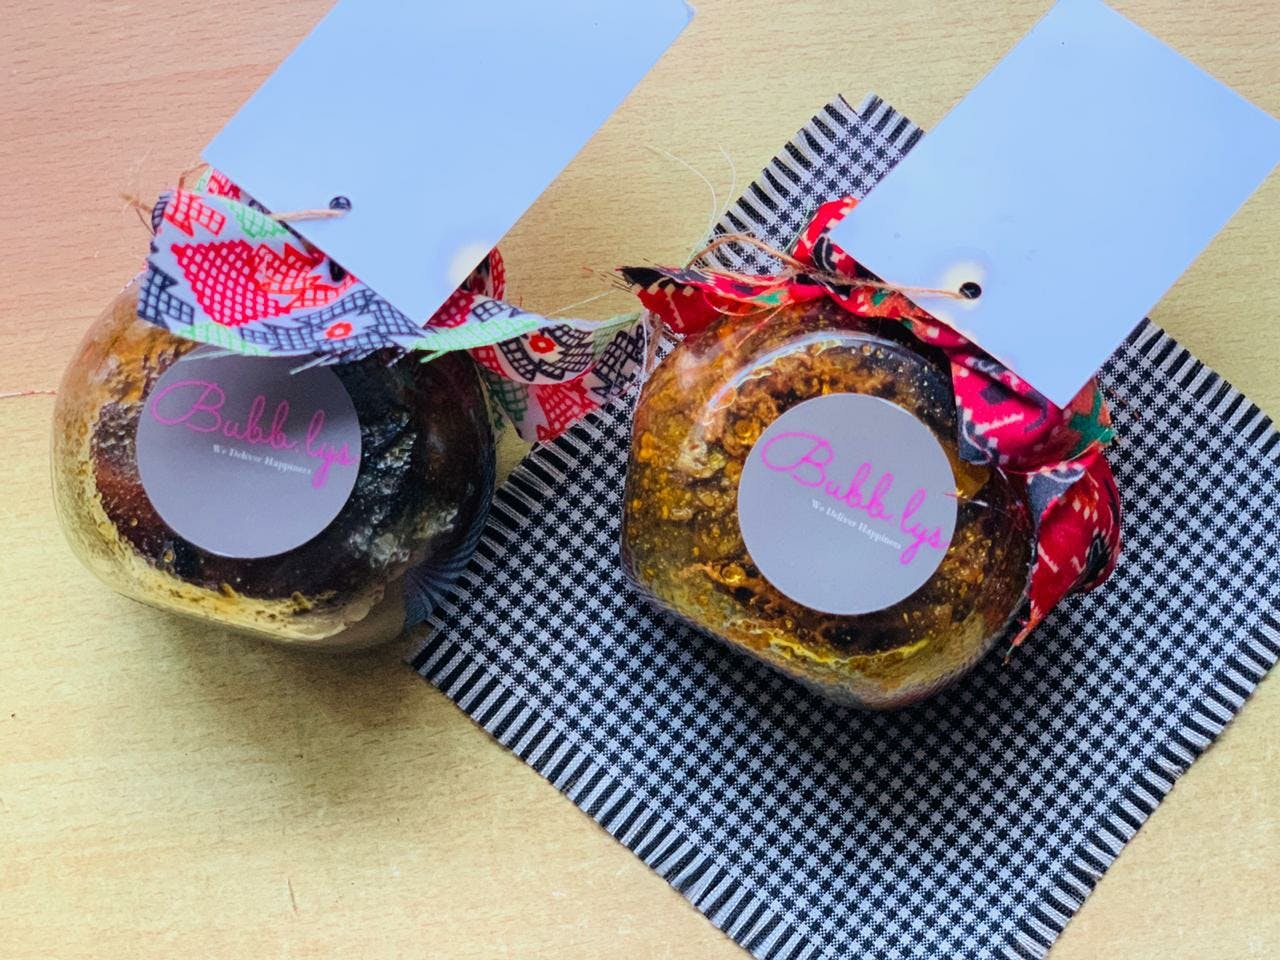 Present,Party favor,Food,Bottle cap,Fashion accessory,Muffin